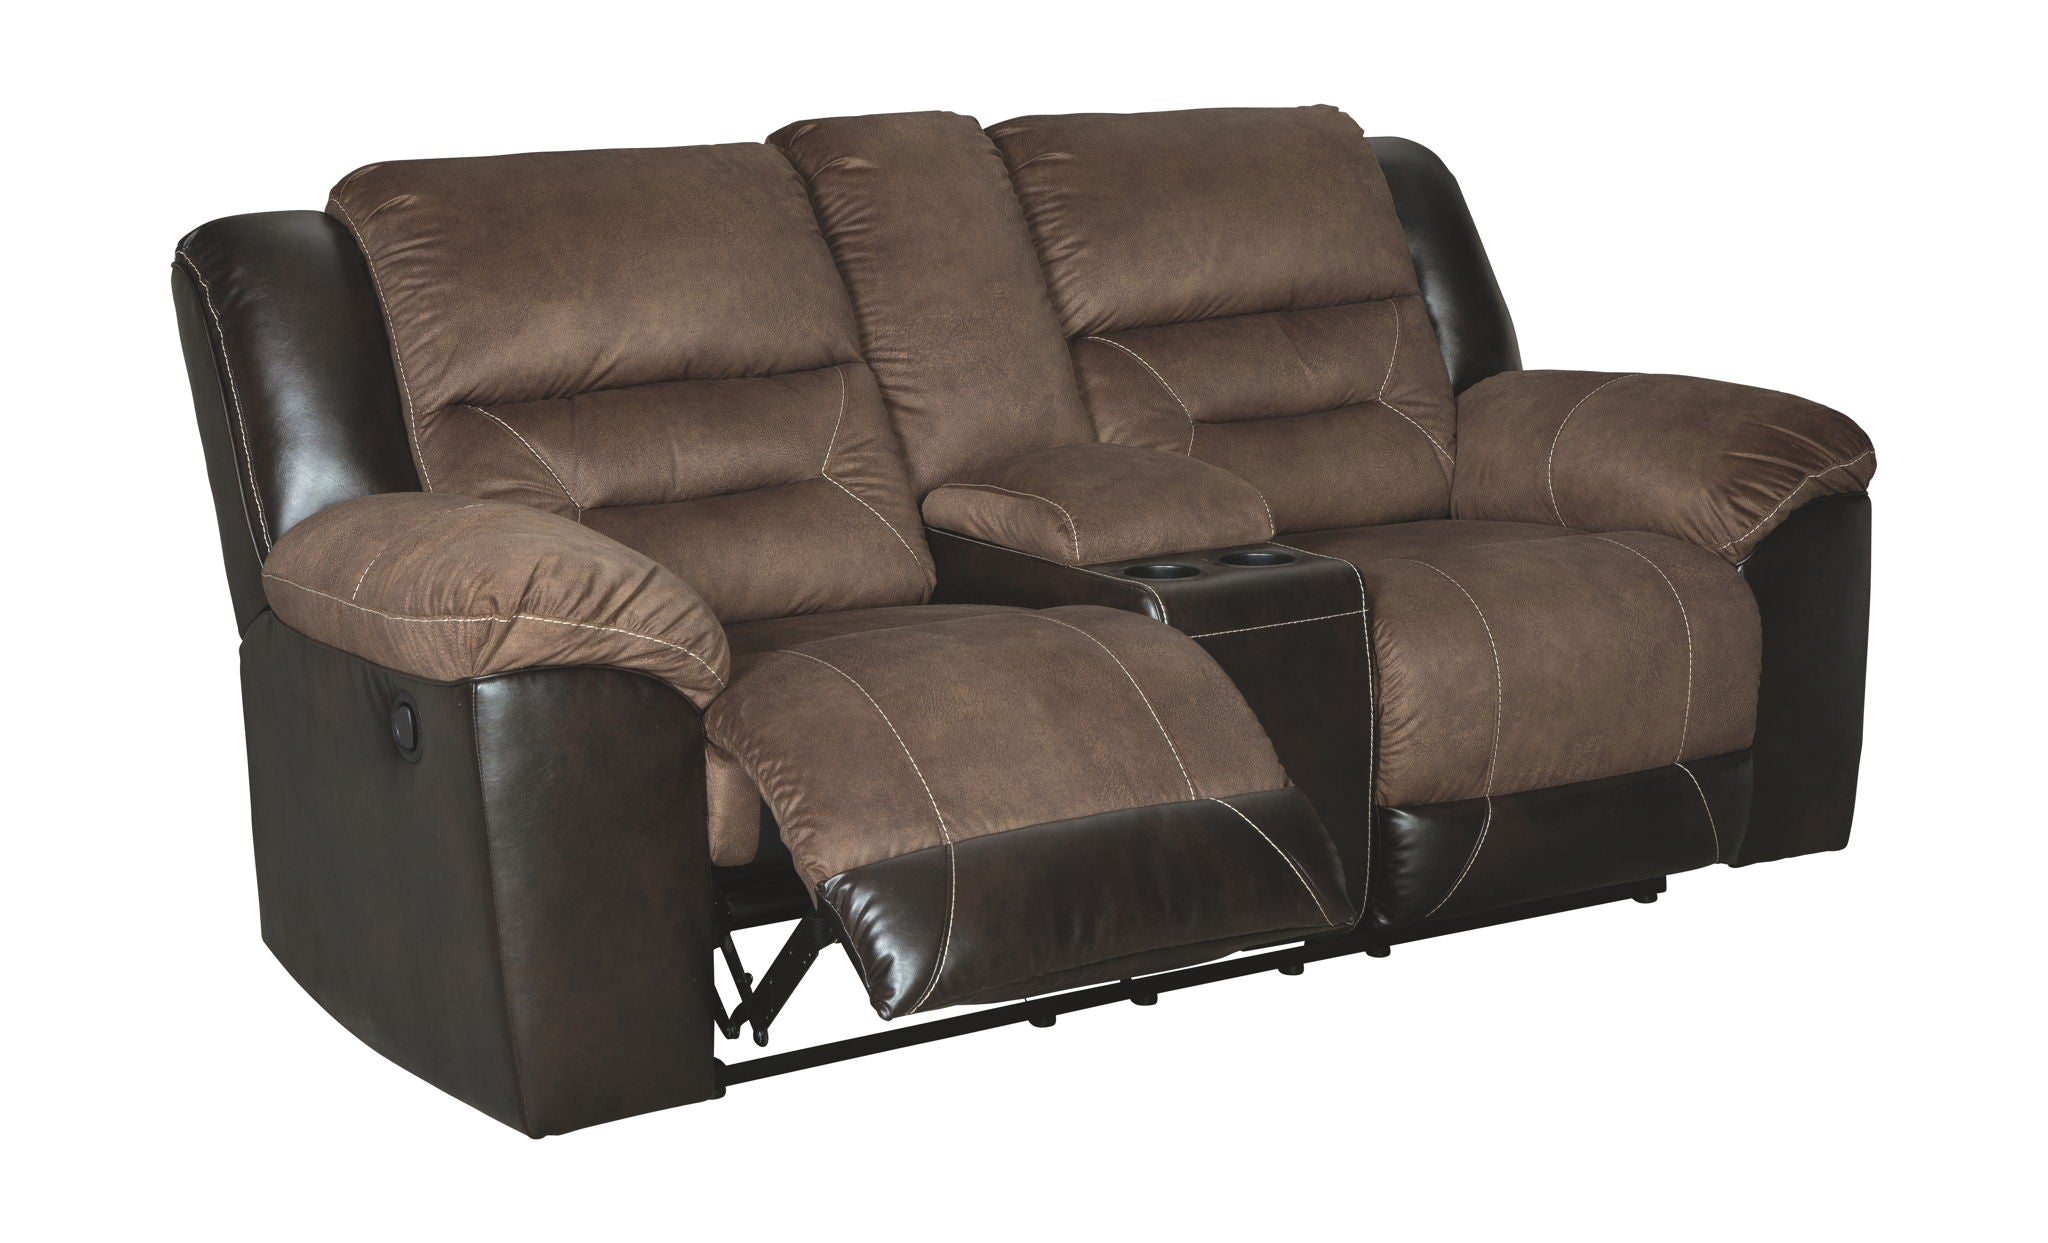 Earhart Reclining Loveseat with Console | Calgary's Furniture Store